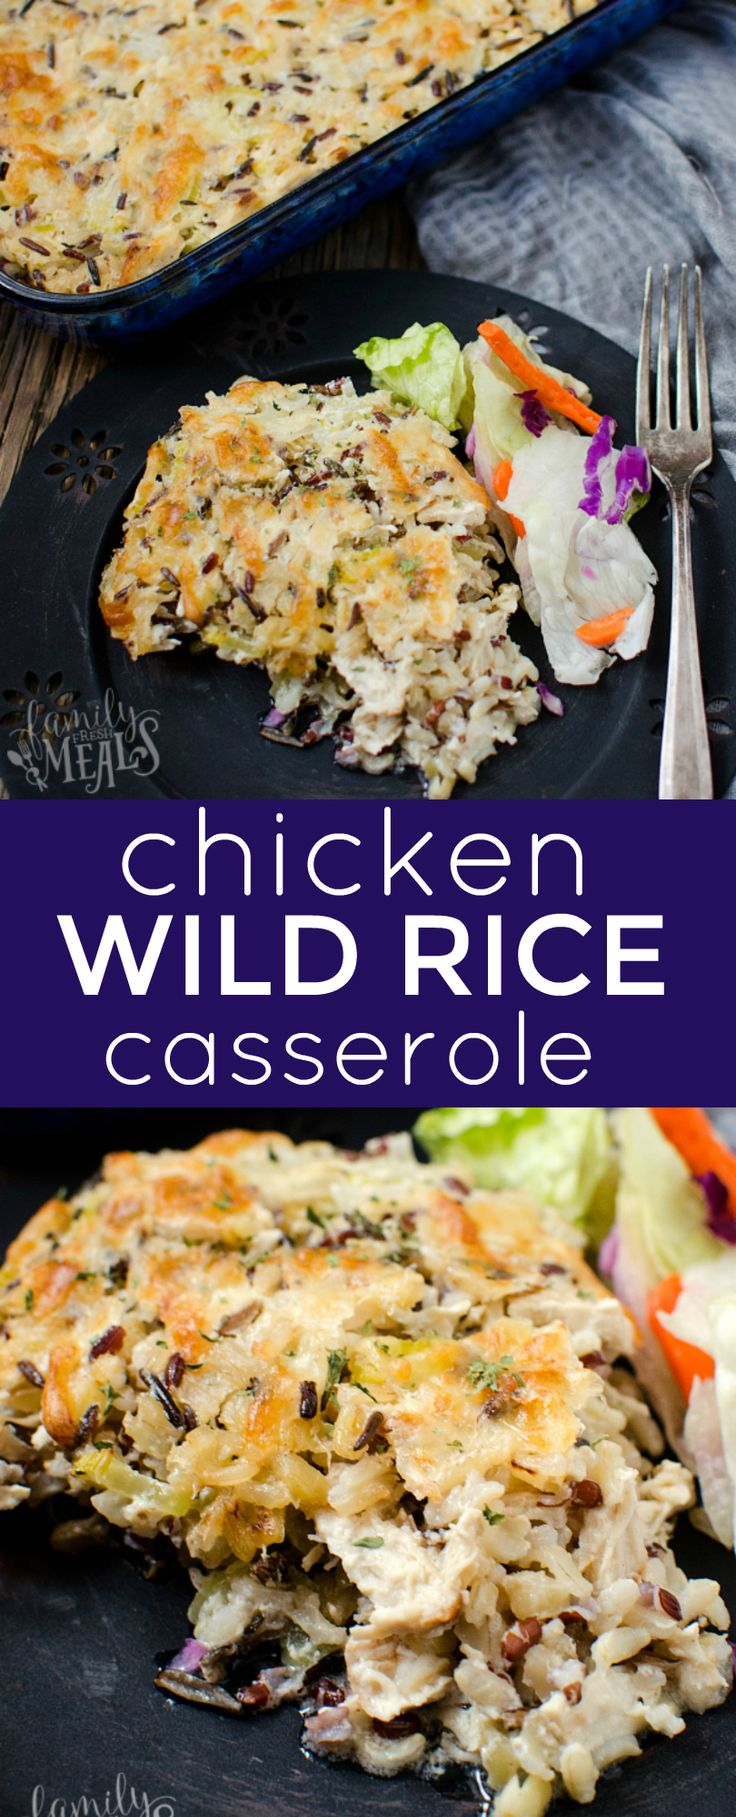 Chicken Wild Rice Casserole Recipe - FamilyFreshMeals.com